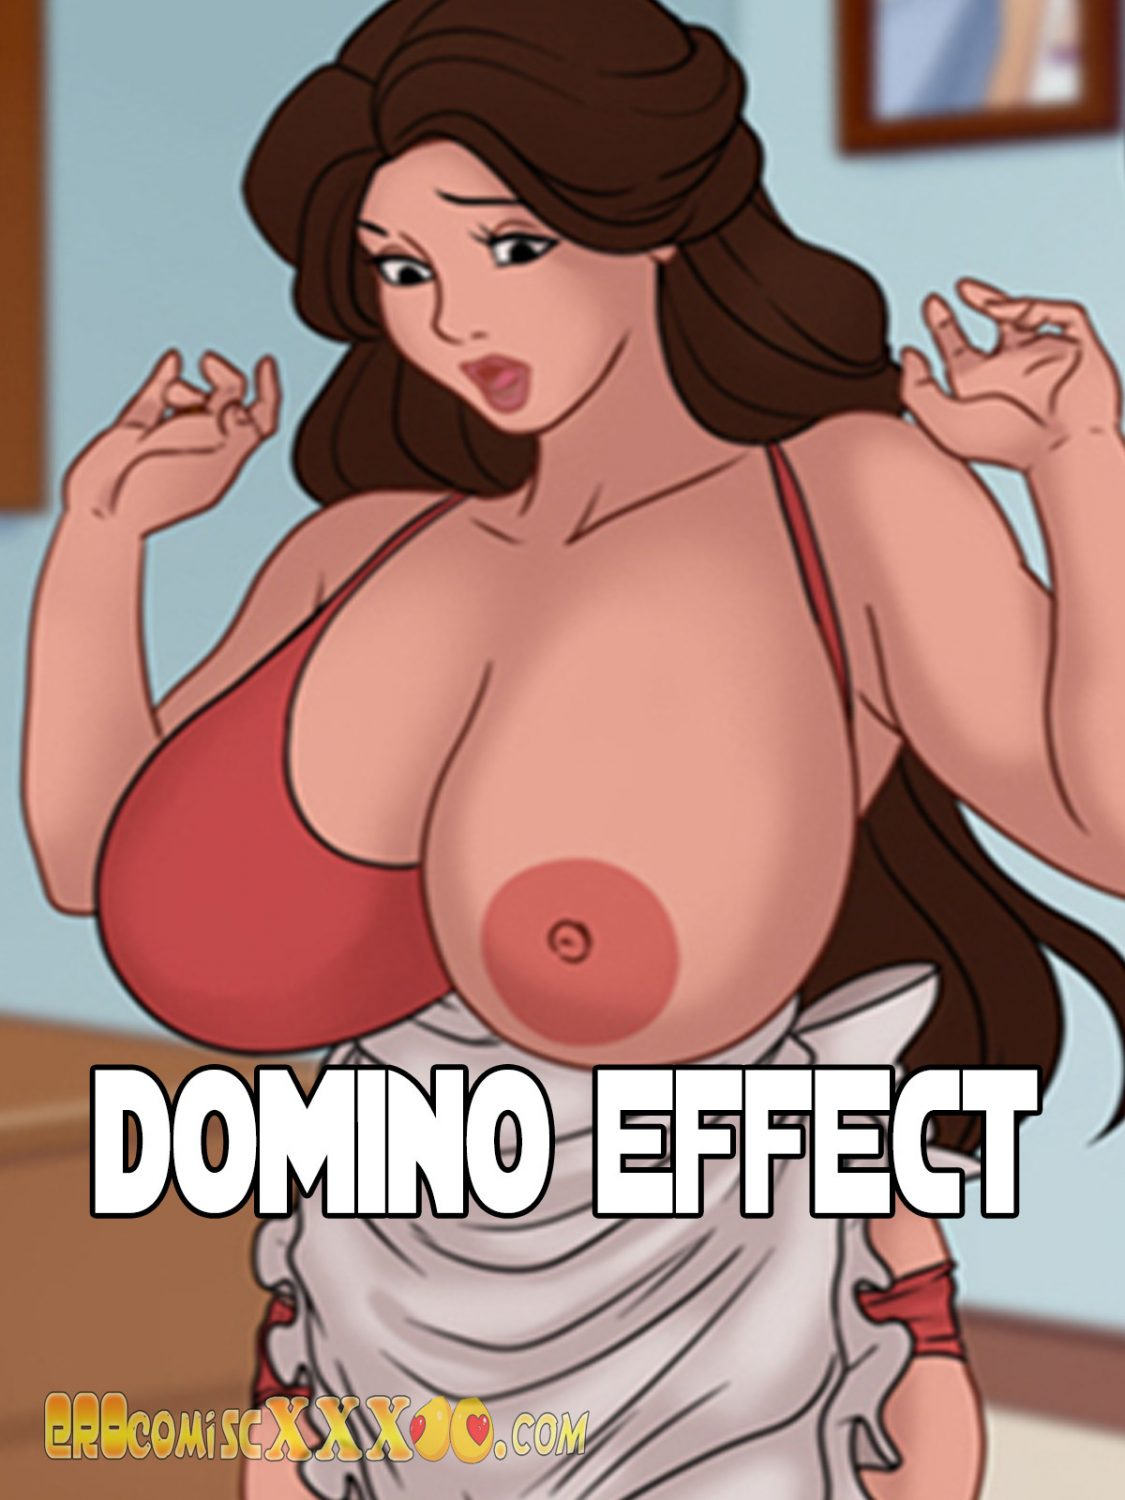 001 30 1125x1500 - DOMINO EFFECT - (MILFTOON).